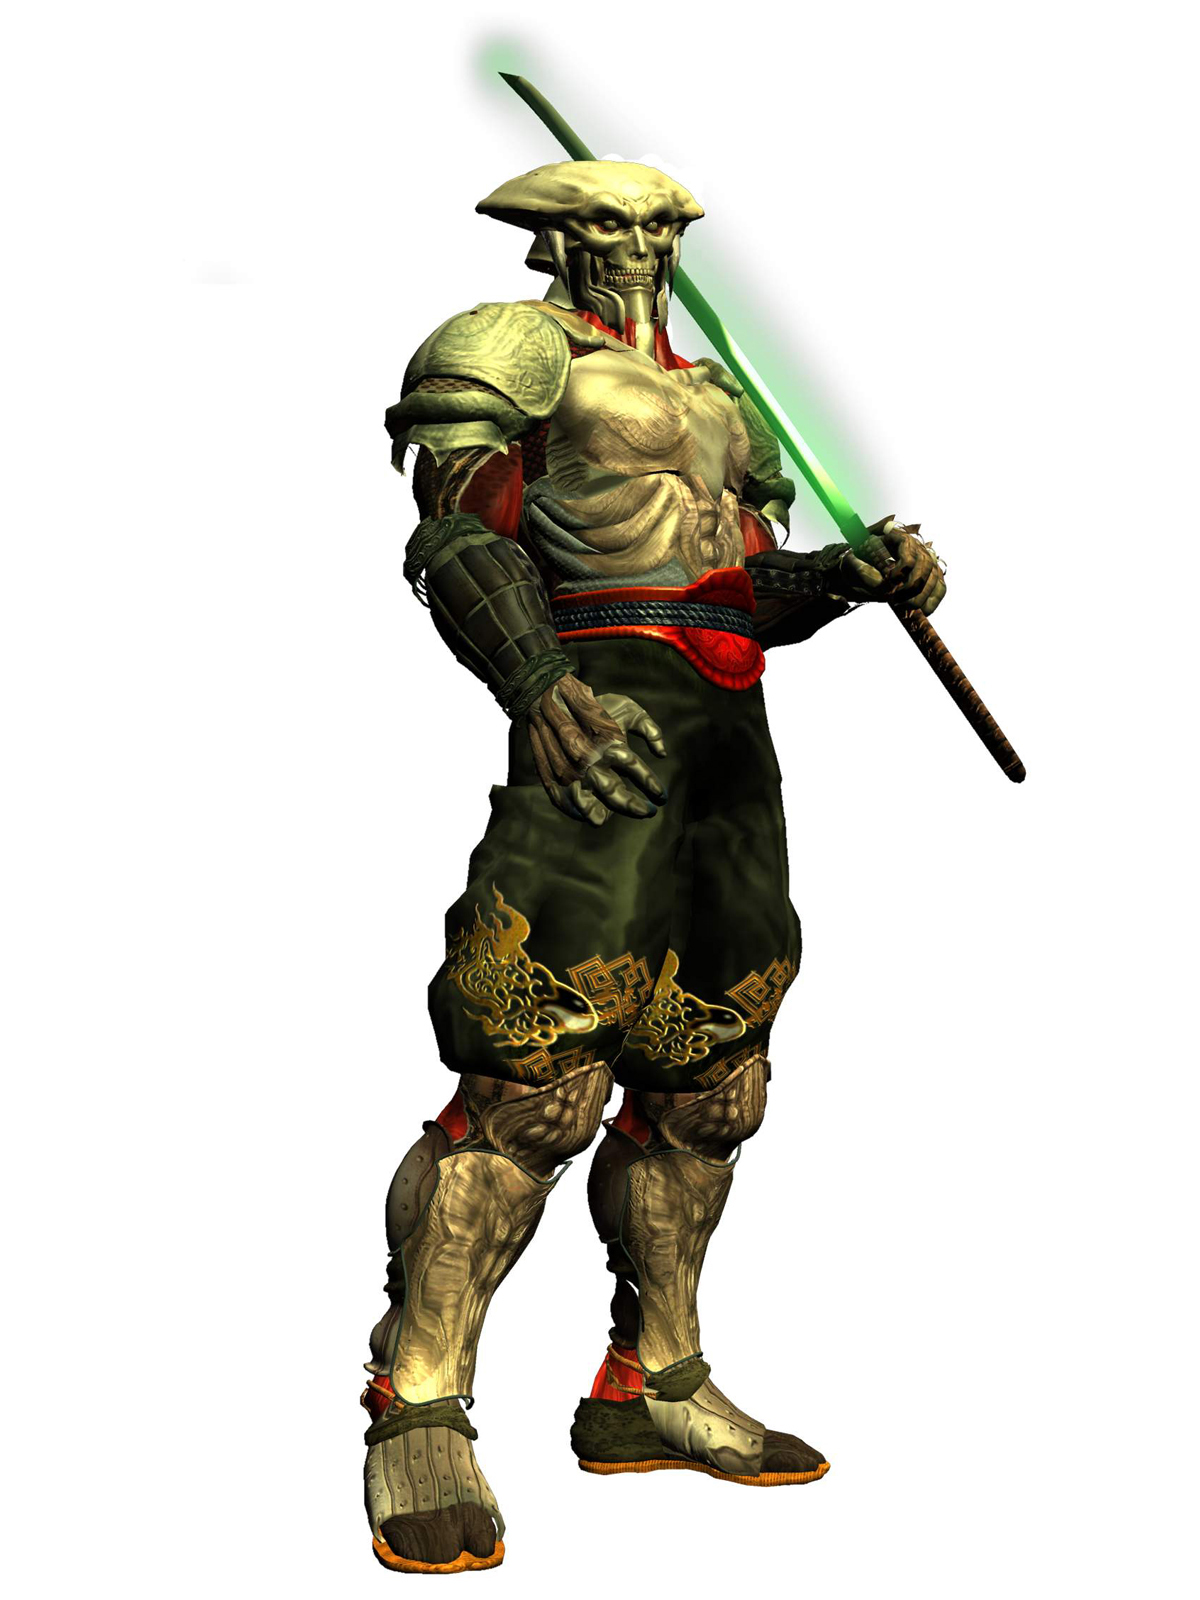 Hey, you bring that from Soul Caliber?